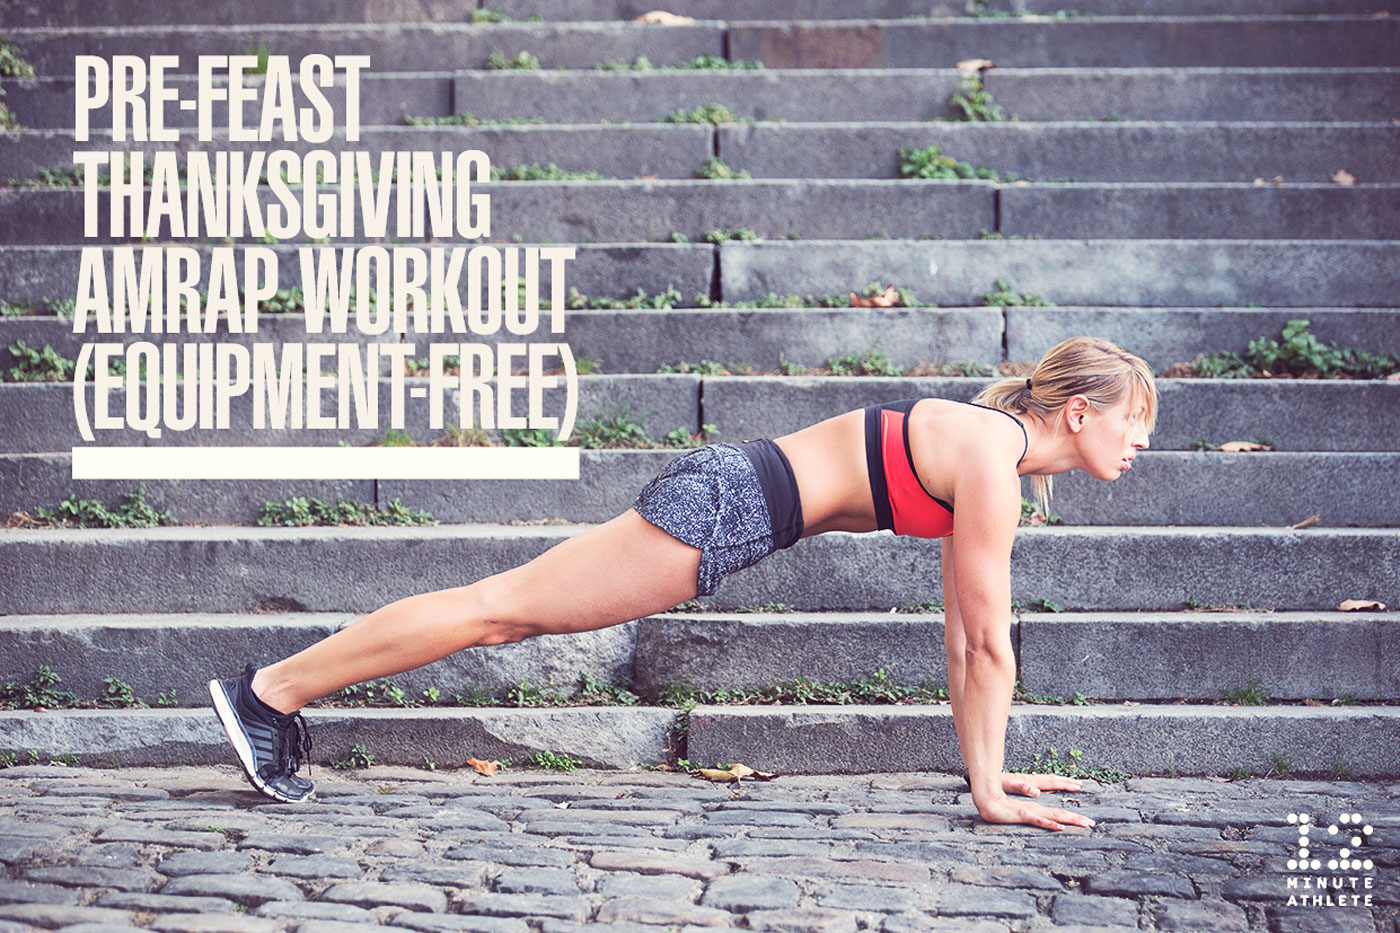 Pre-Feast Thanksgiving AMRAP Workout (Equipment-Free)